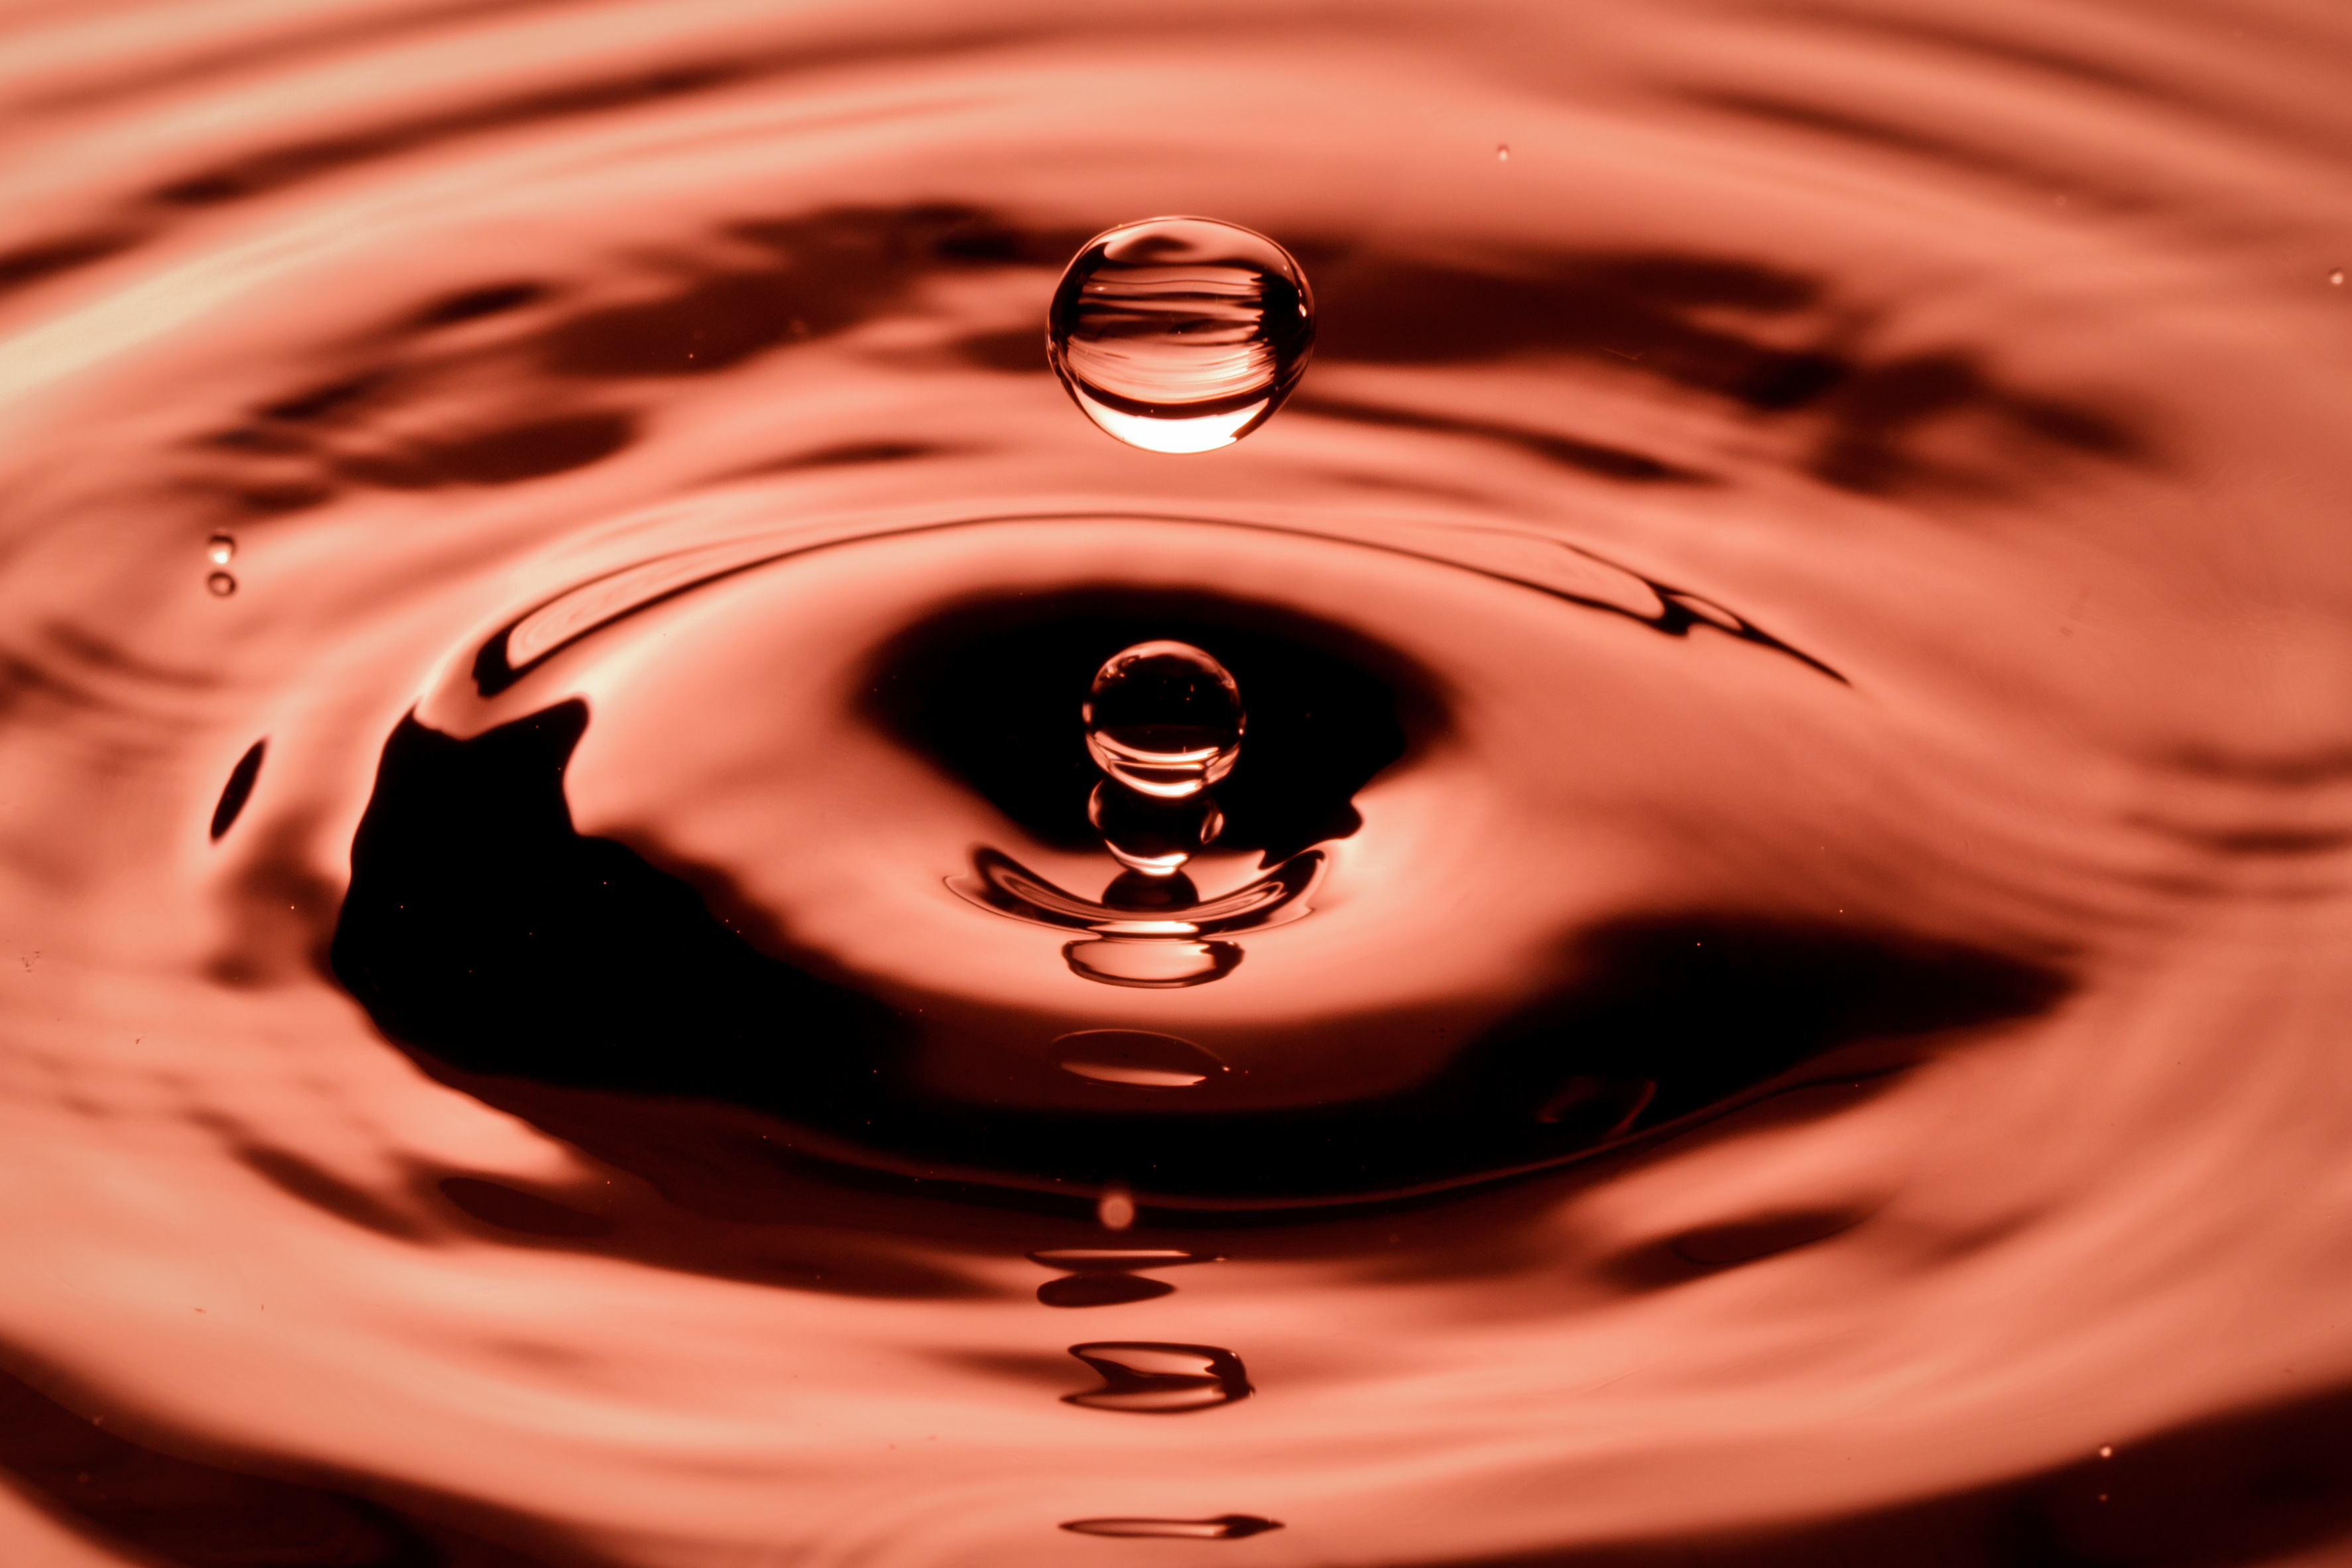 117275 download wallpaper Macro, Drops, Liquid screensavers and pictures for free